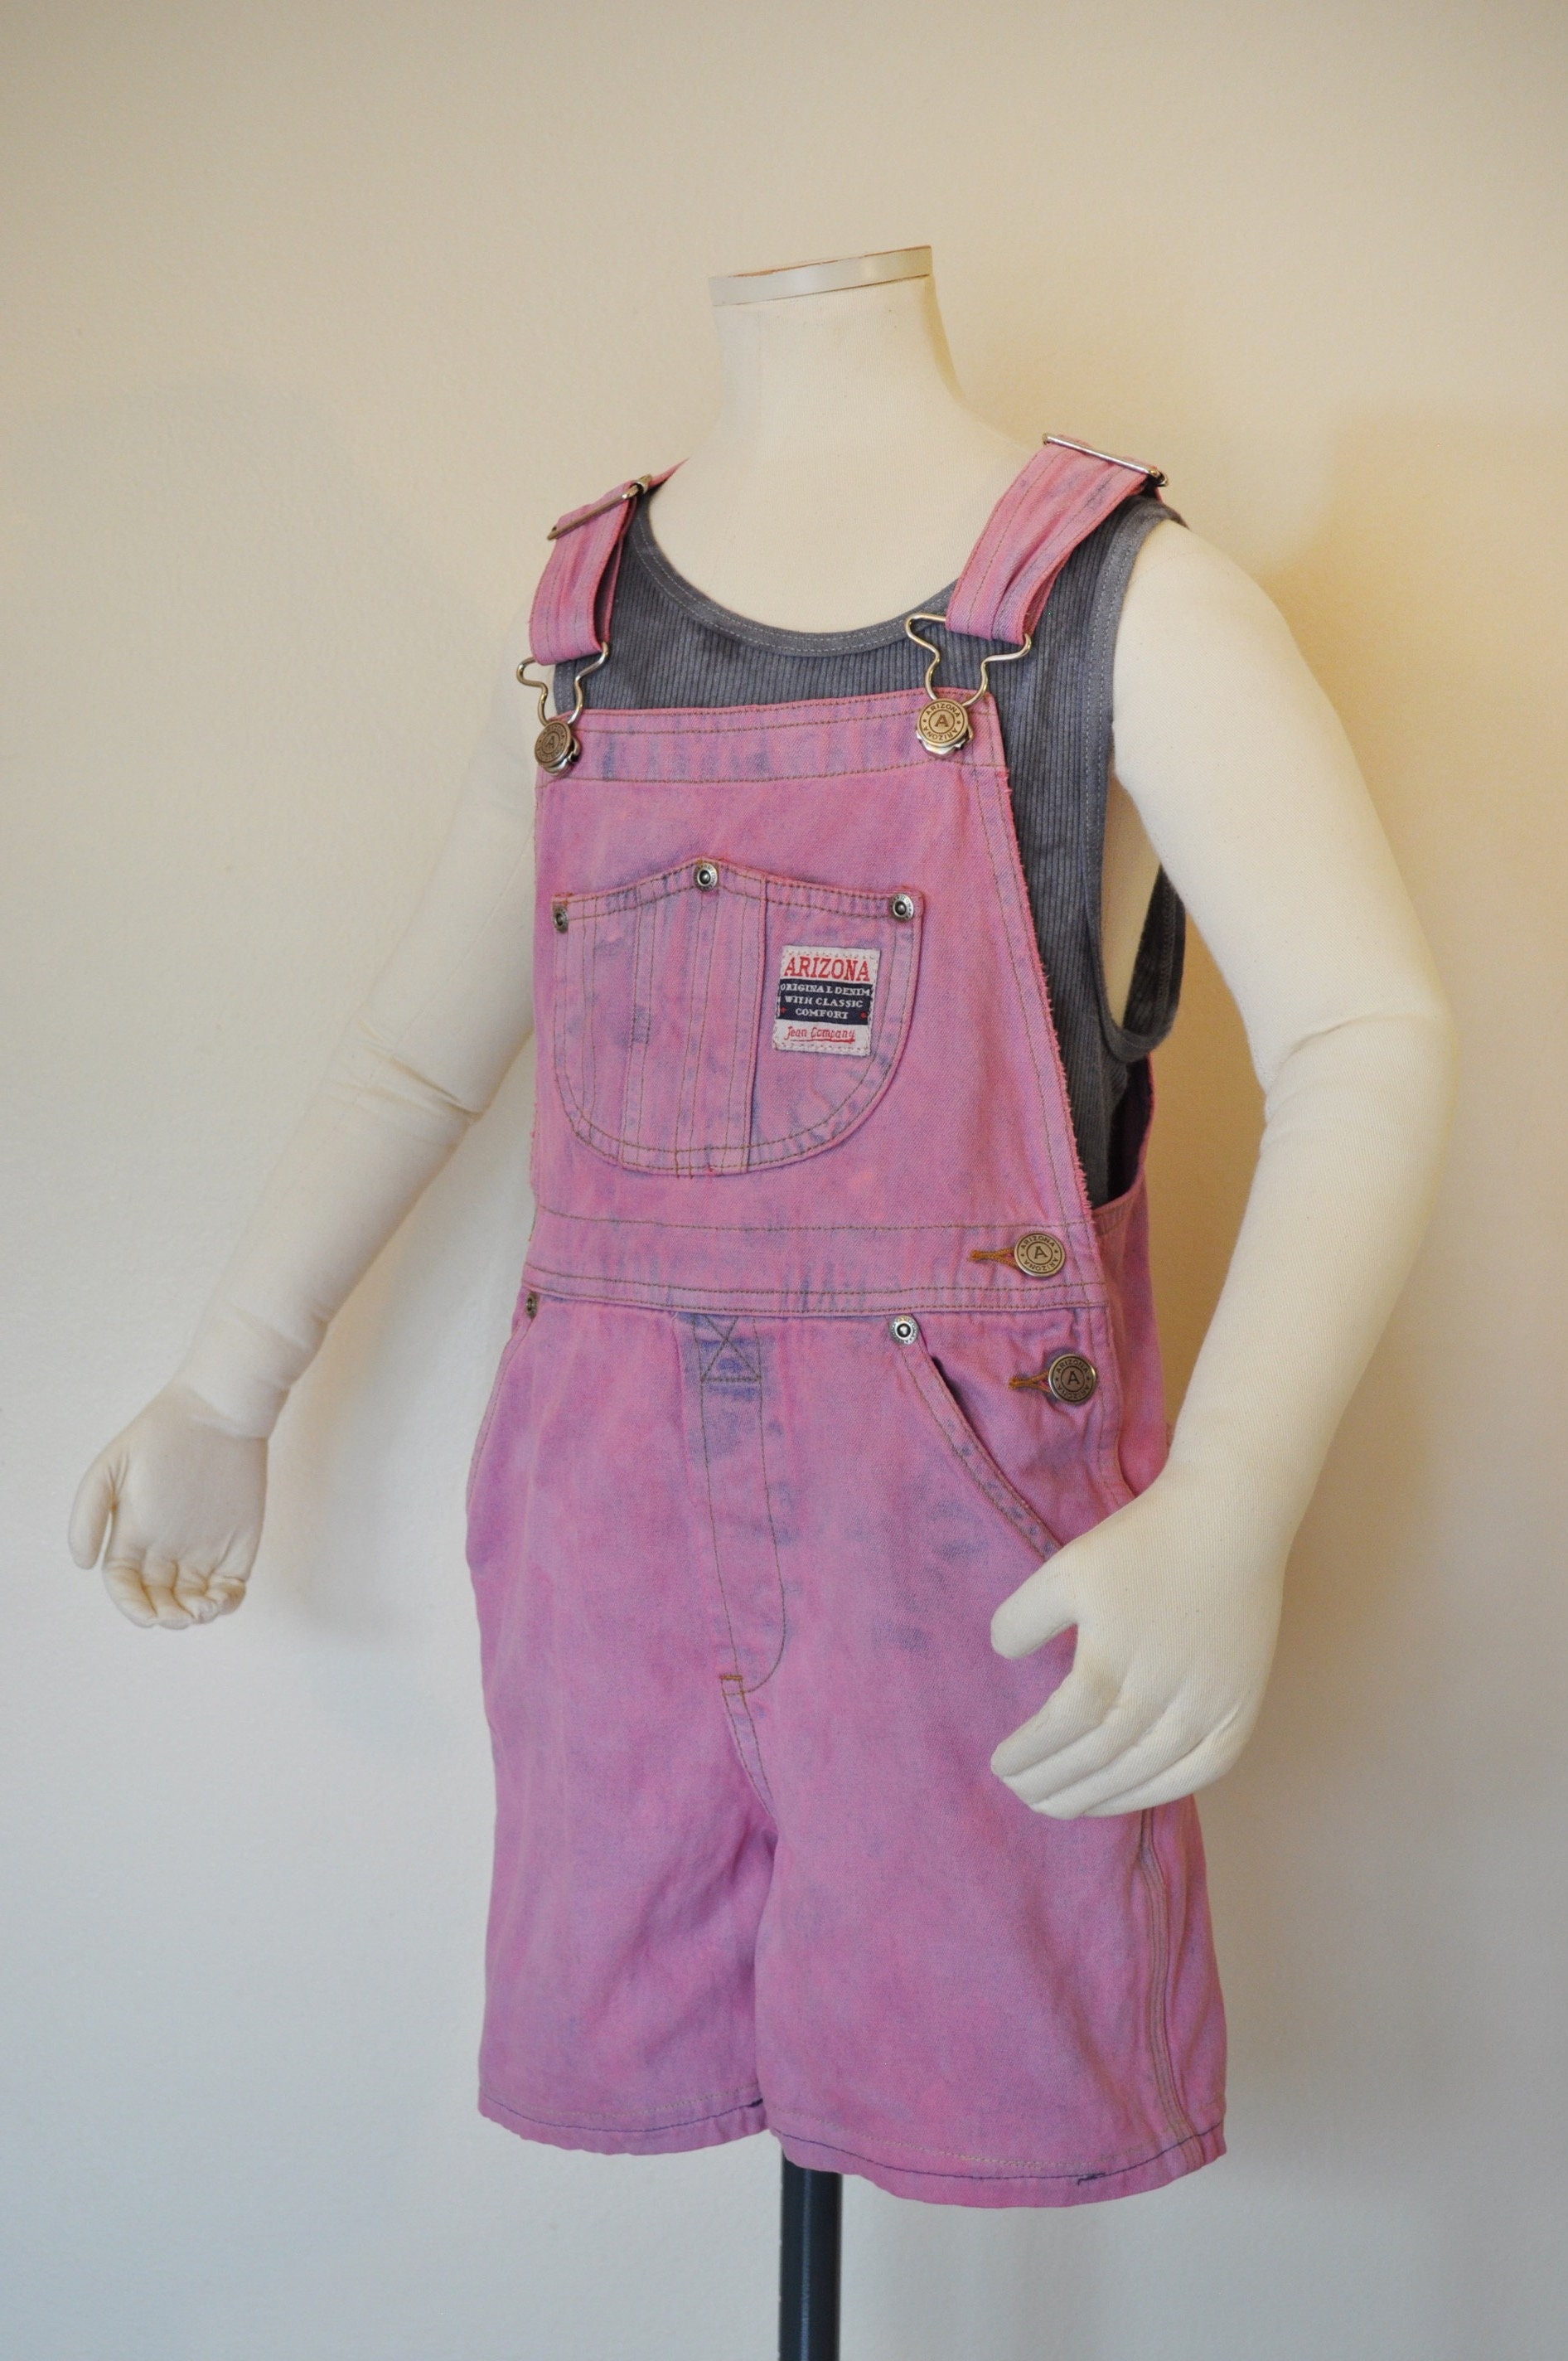 Vintage Overalls & Jumpsuits Pink Kid Sz 6 Year Bib Overall Shorts - Dyed Upcycled Vintage Arizona Overall Child Girl Boy Size  26 Waist $25.00 AT vintagedancer.com